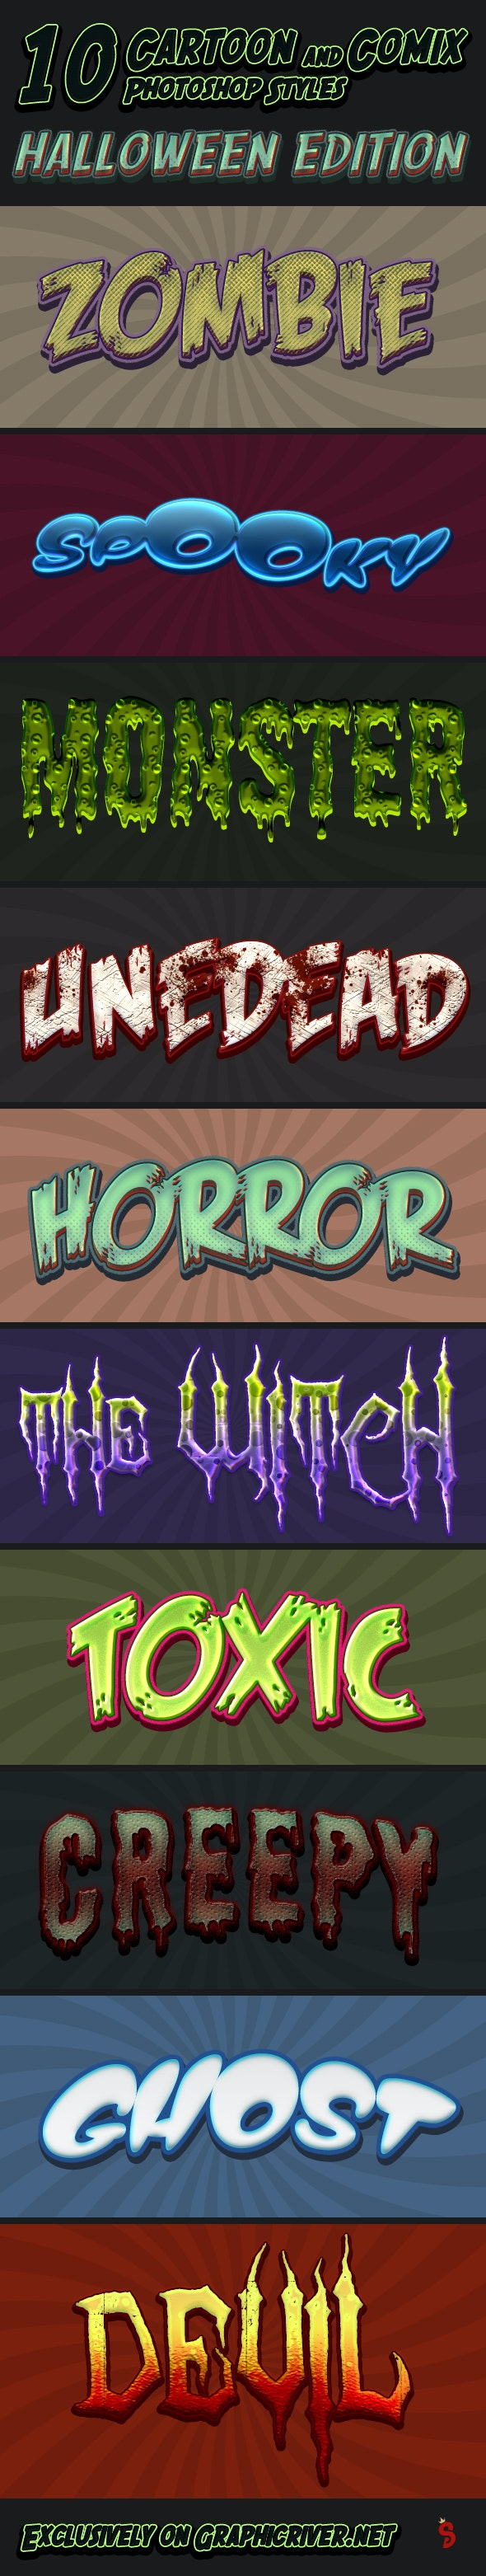 Cartoon and Comic Book Styles - Part 9 - Halloween - Text Effects Styles